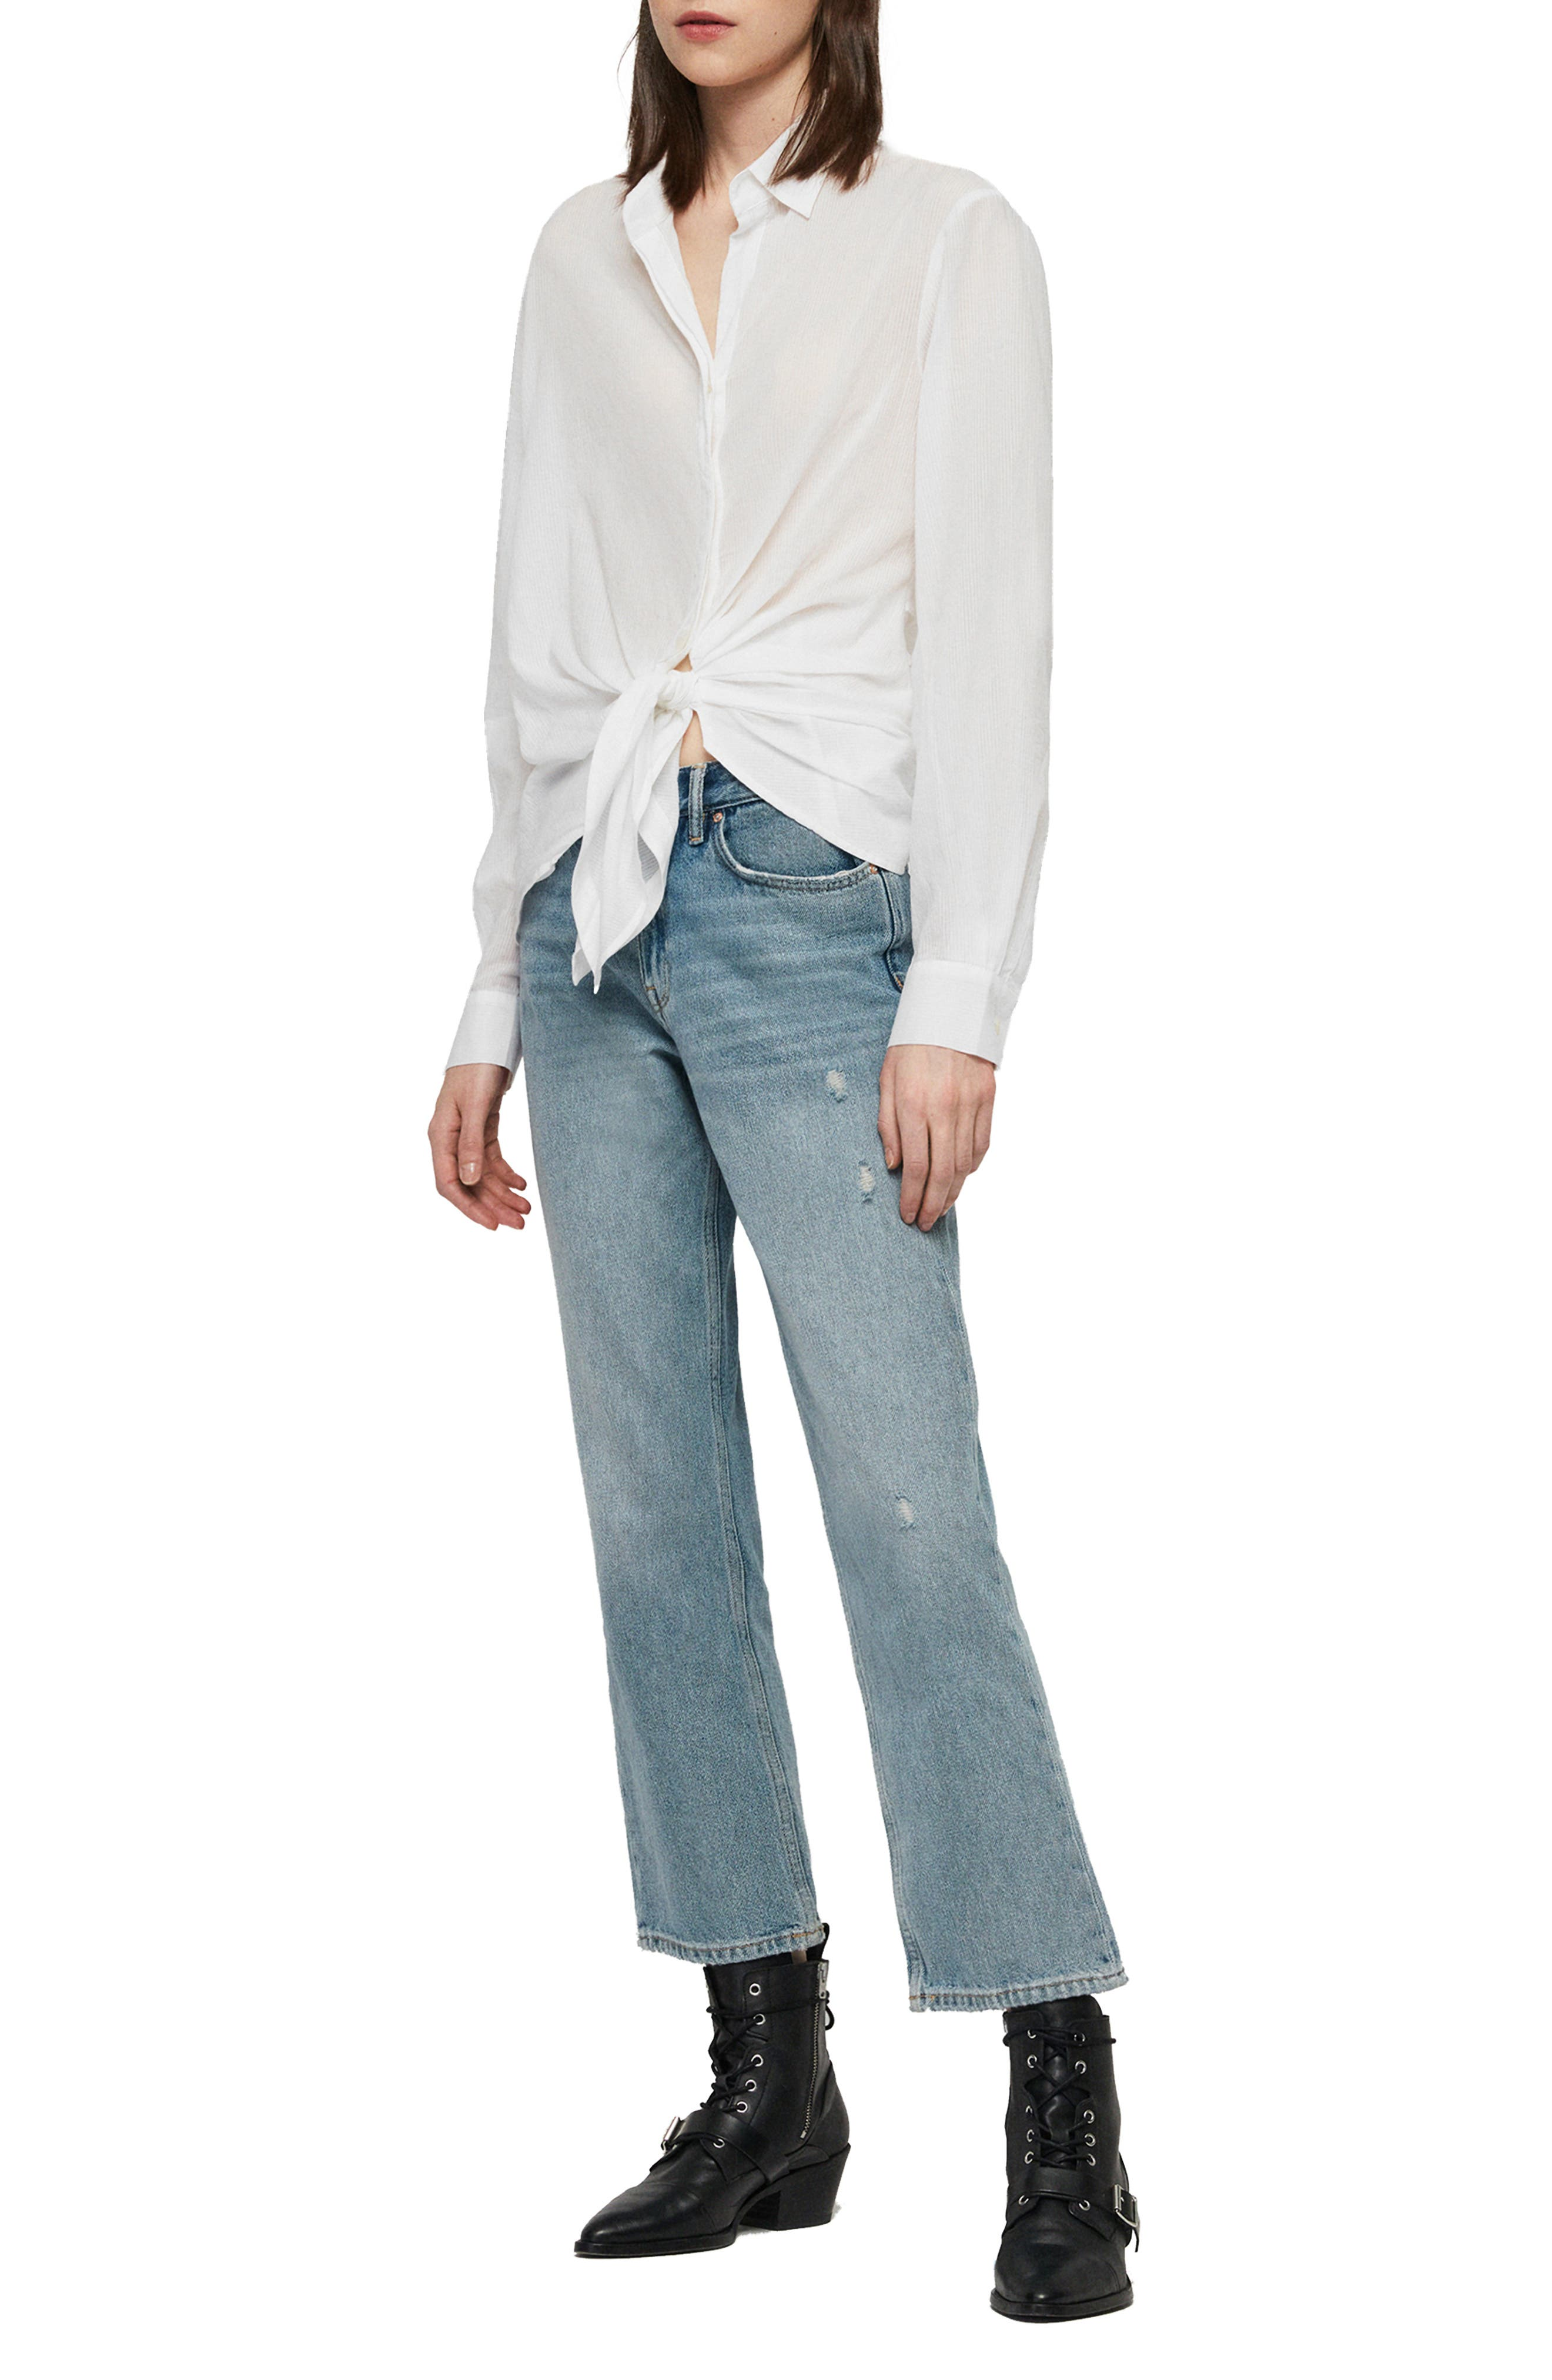 ALLSAINTS, Sirena Front Tie Shirt, Alternate thumbnail 4, color, CHALK WHITE